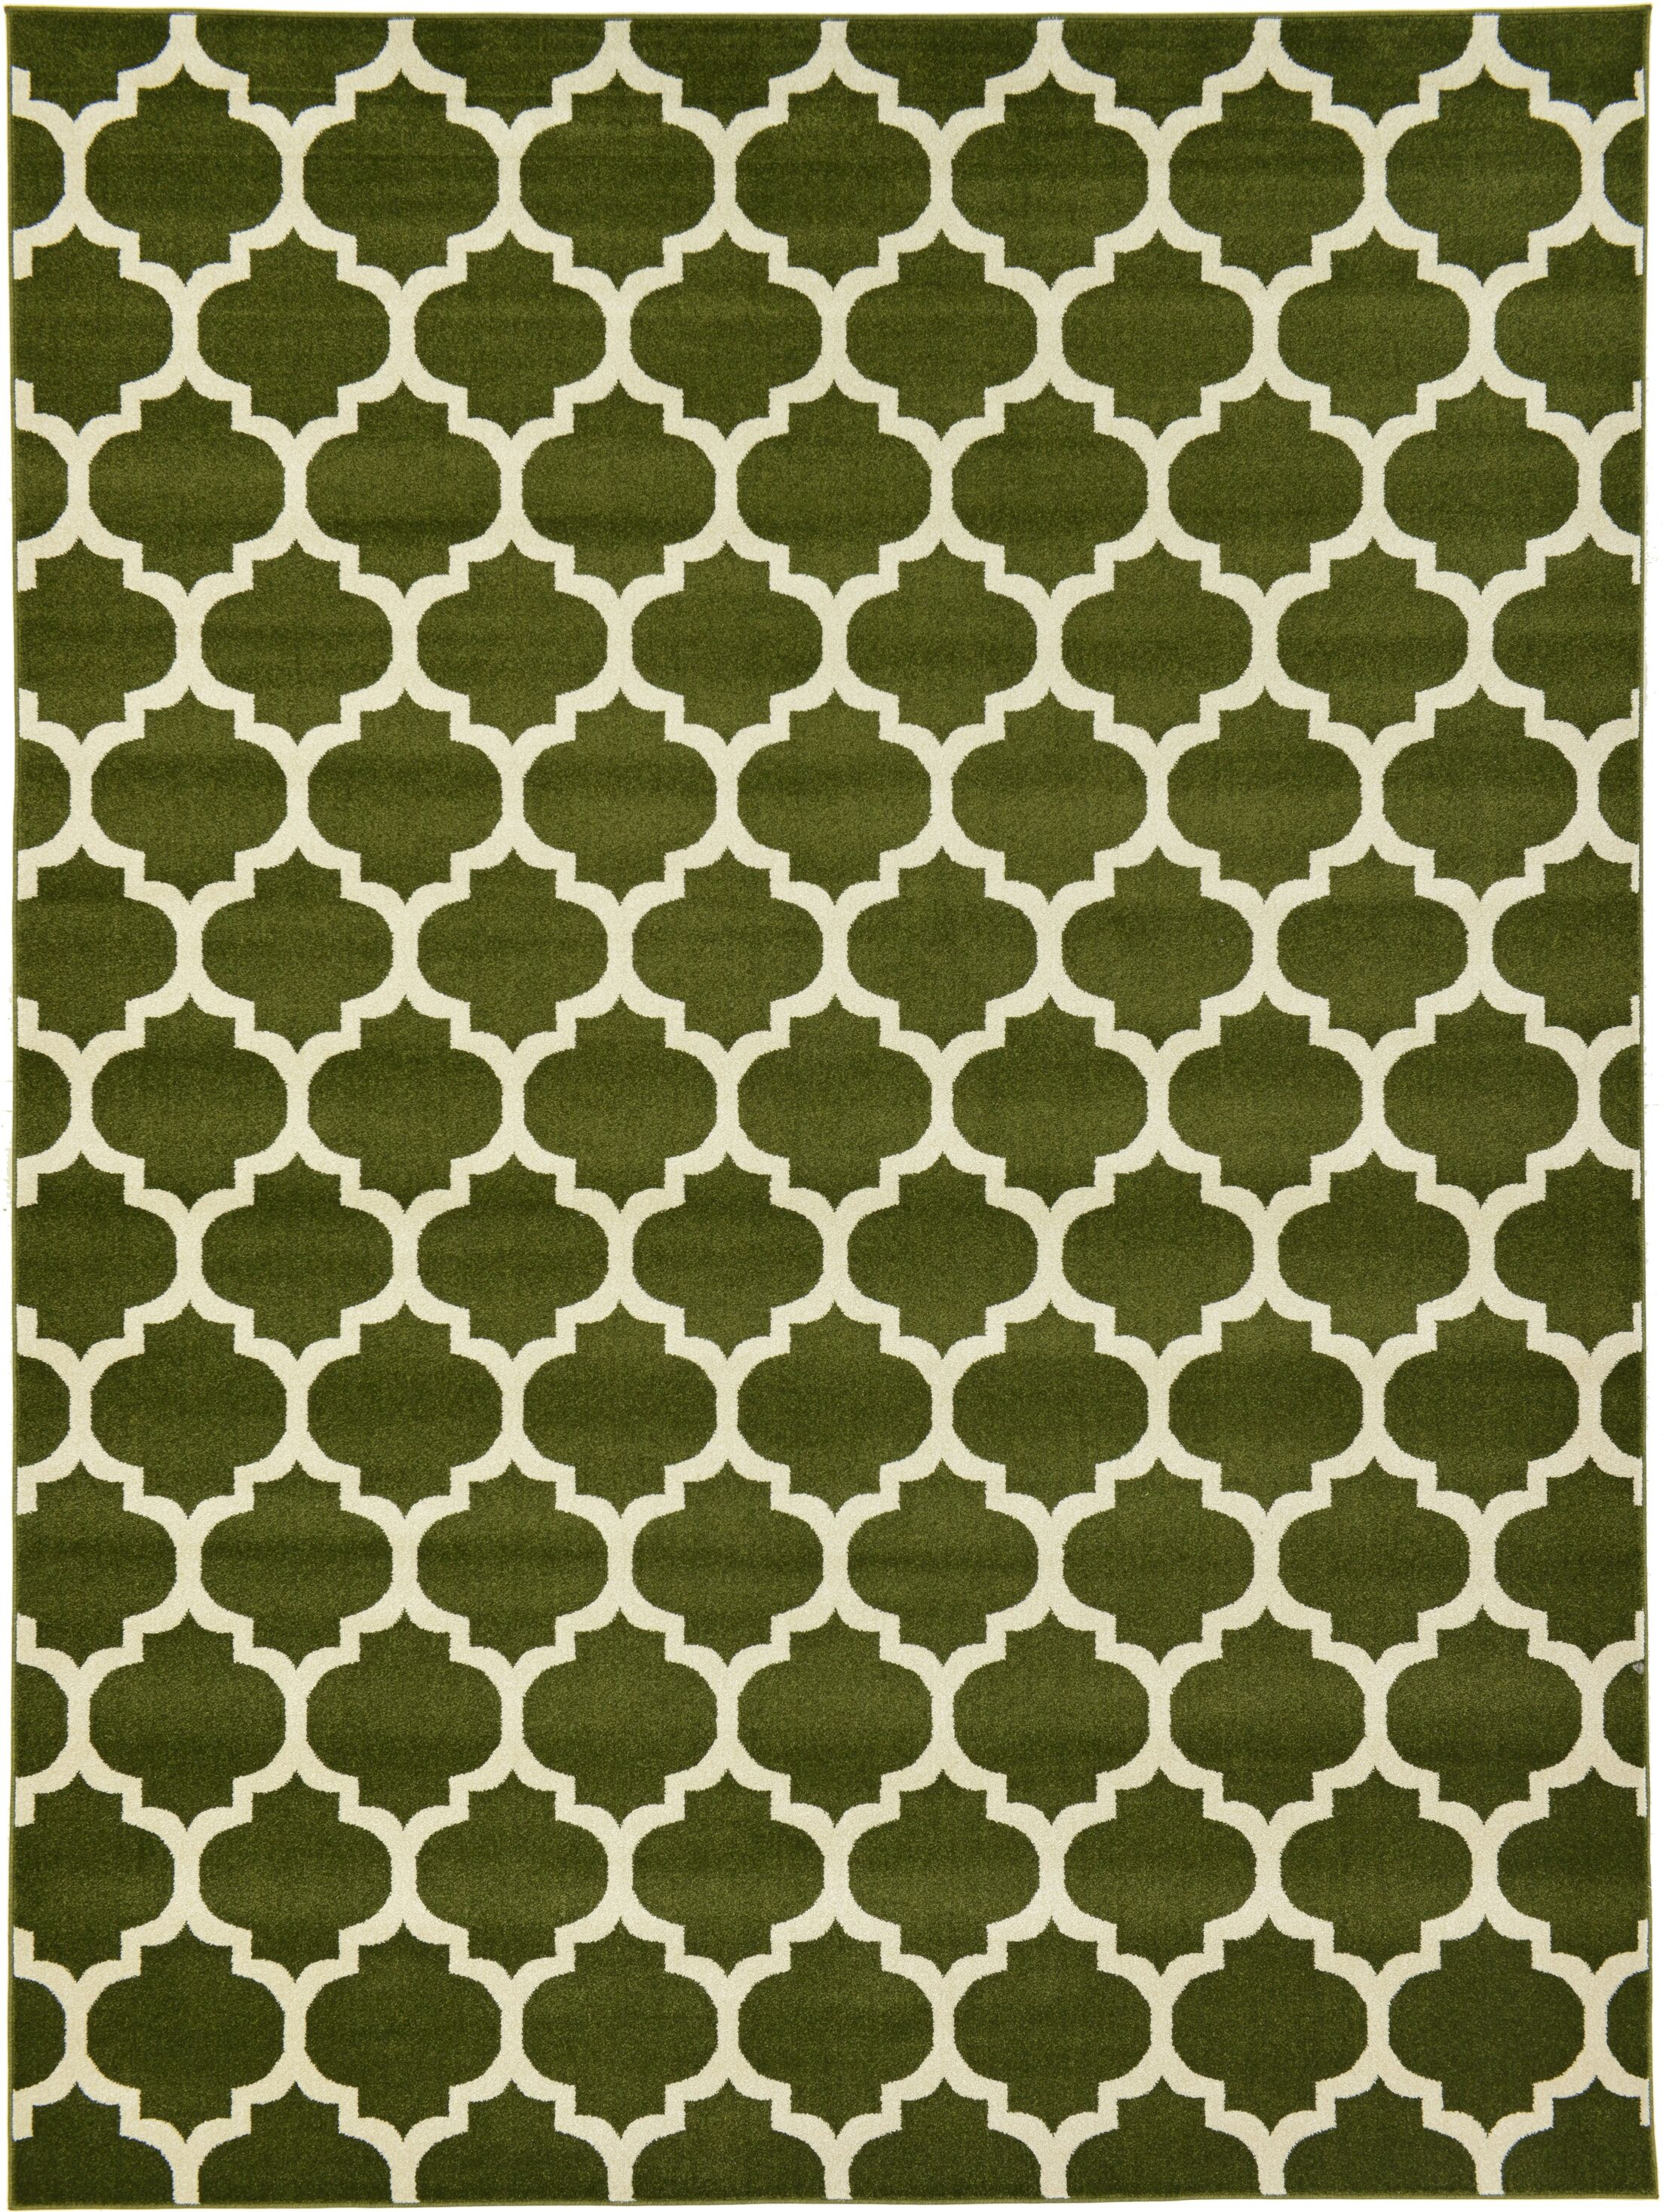 Moore Green/Beige Area Rug Rug Size: Rectangle 9' x 12'